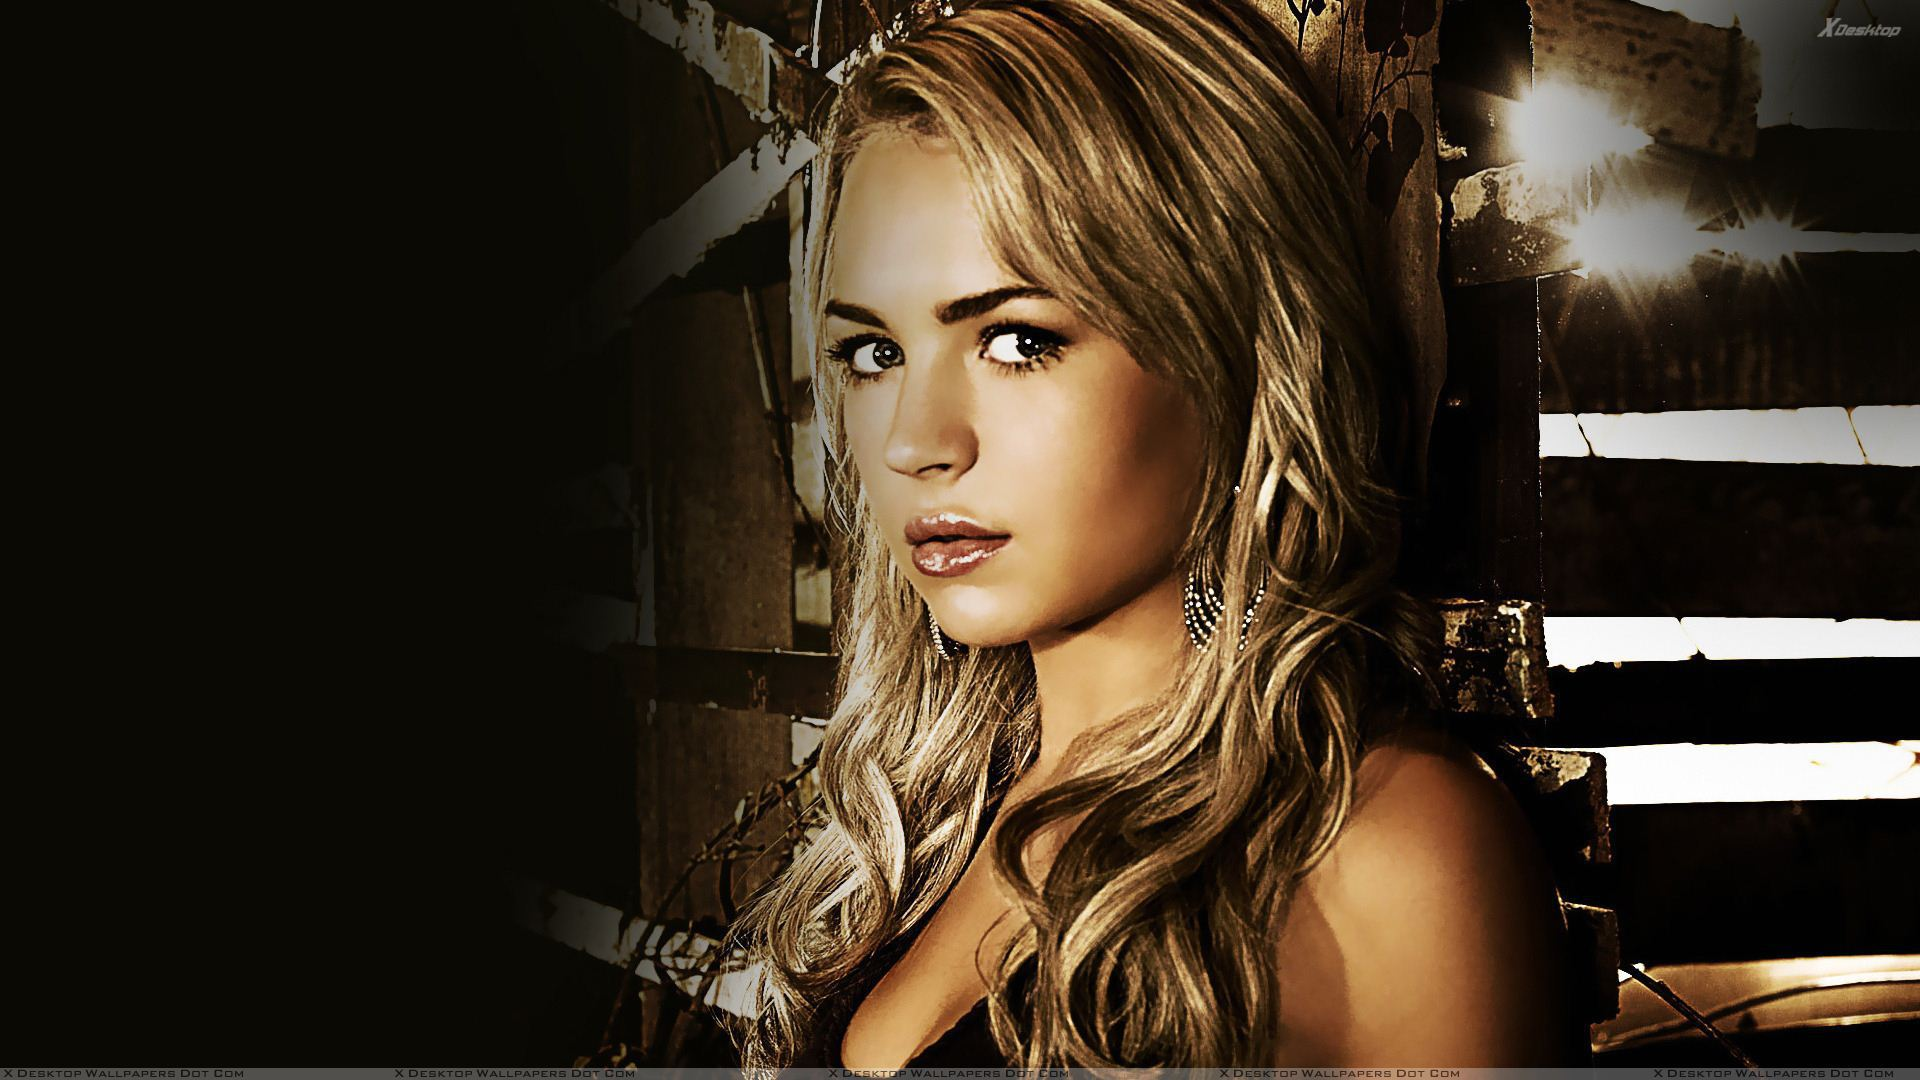 1920x1080 - Brittany Robertson Wallpapers 21